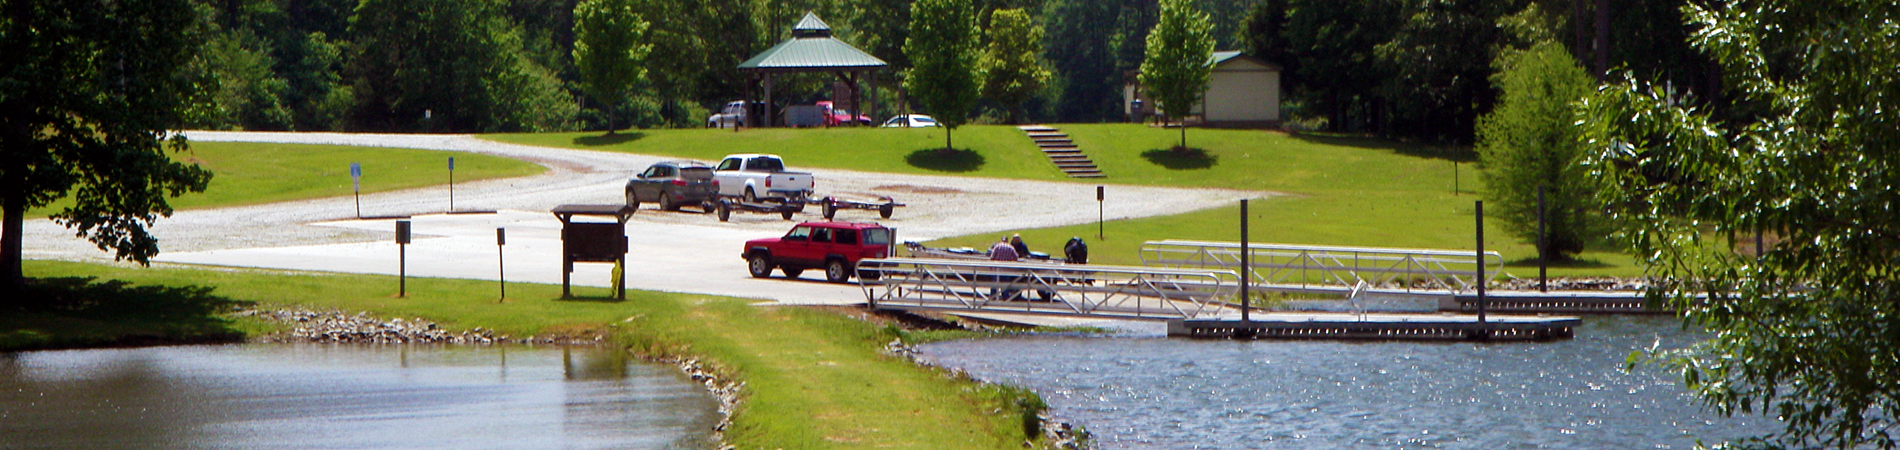 Boat Ramp at Big Lazer Creek